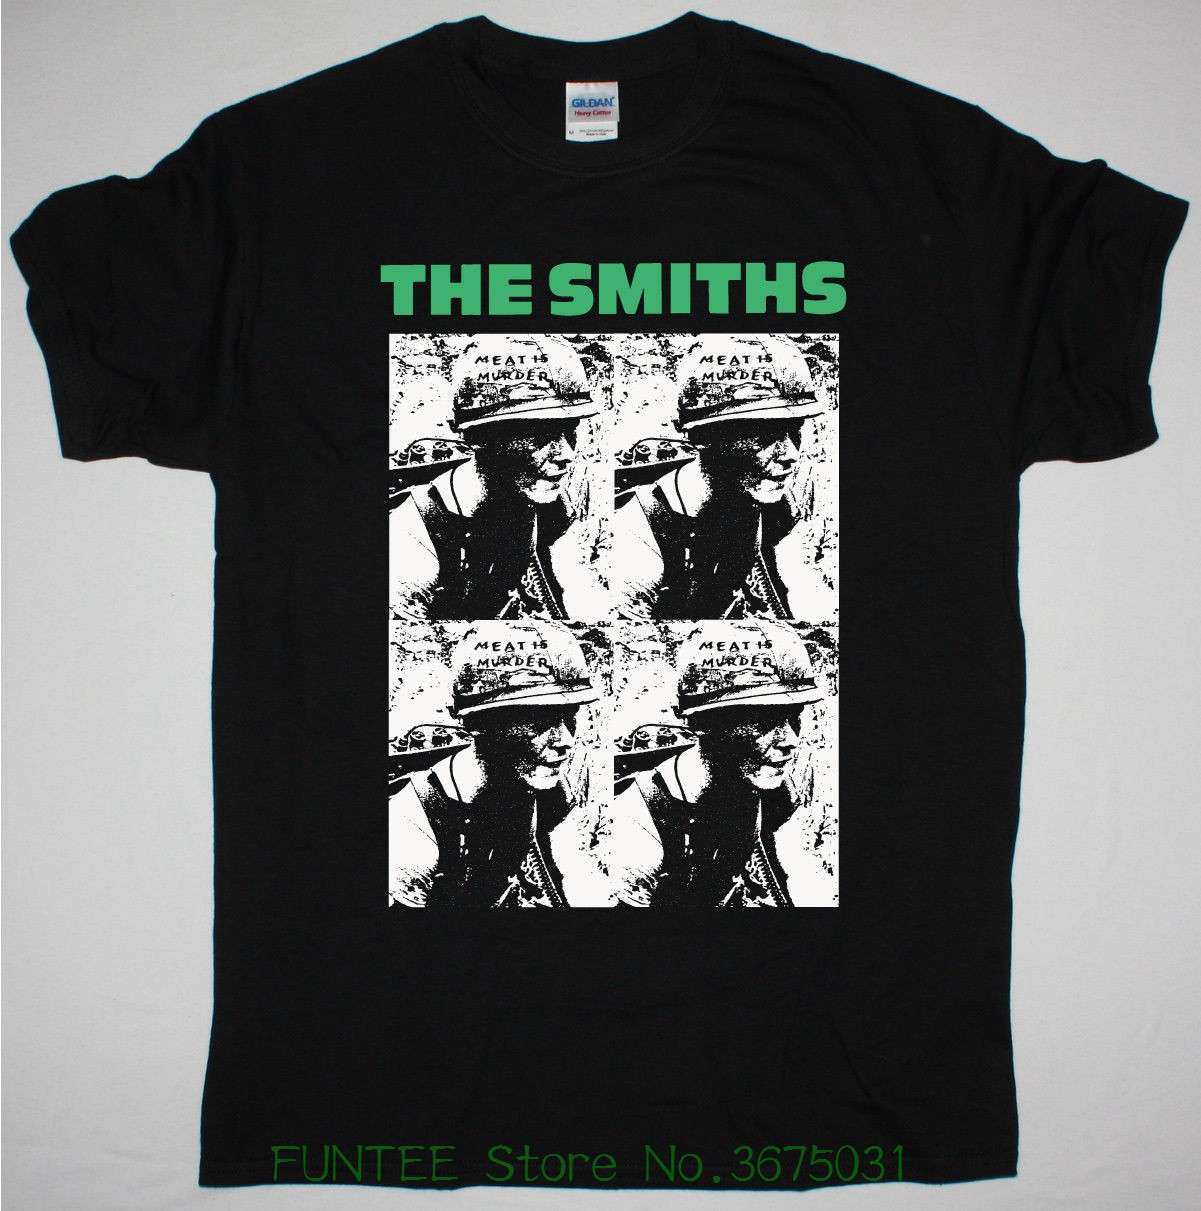 4dc401d6 Short Sleeve Tshirt Fashion The Smiths Meat Is Murder Black Mens T Shirt  Indie Rock Morrissey